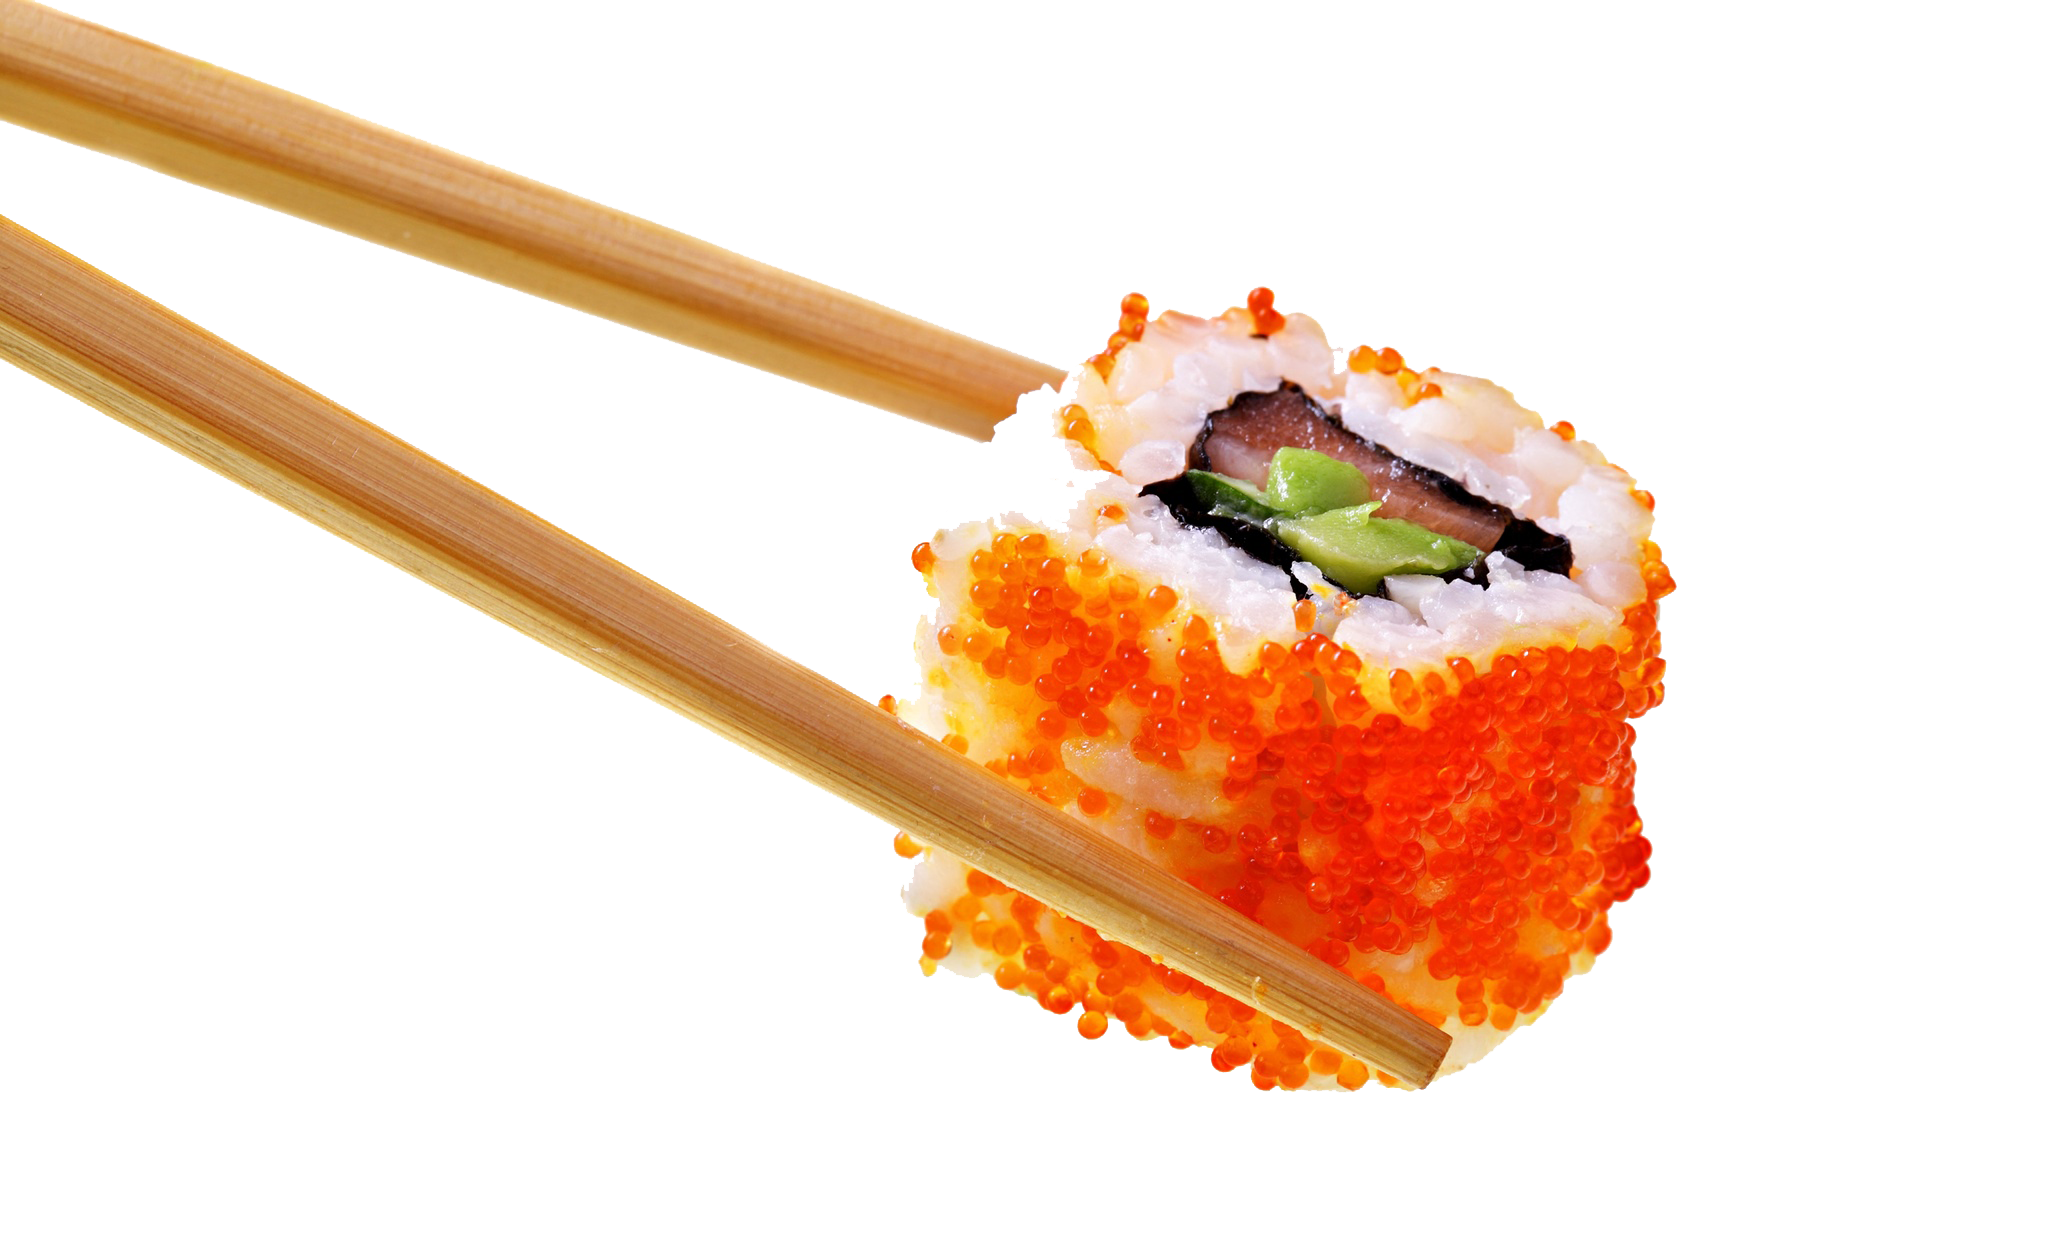 Gallery of Sushi Roll Png - Sushi Roll PNG